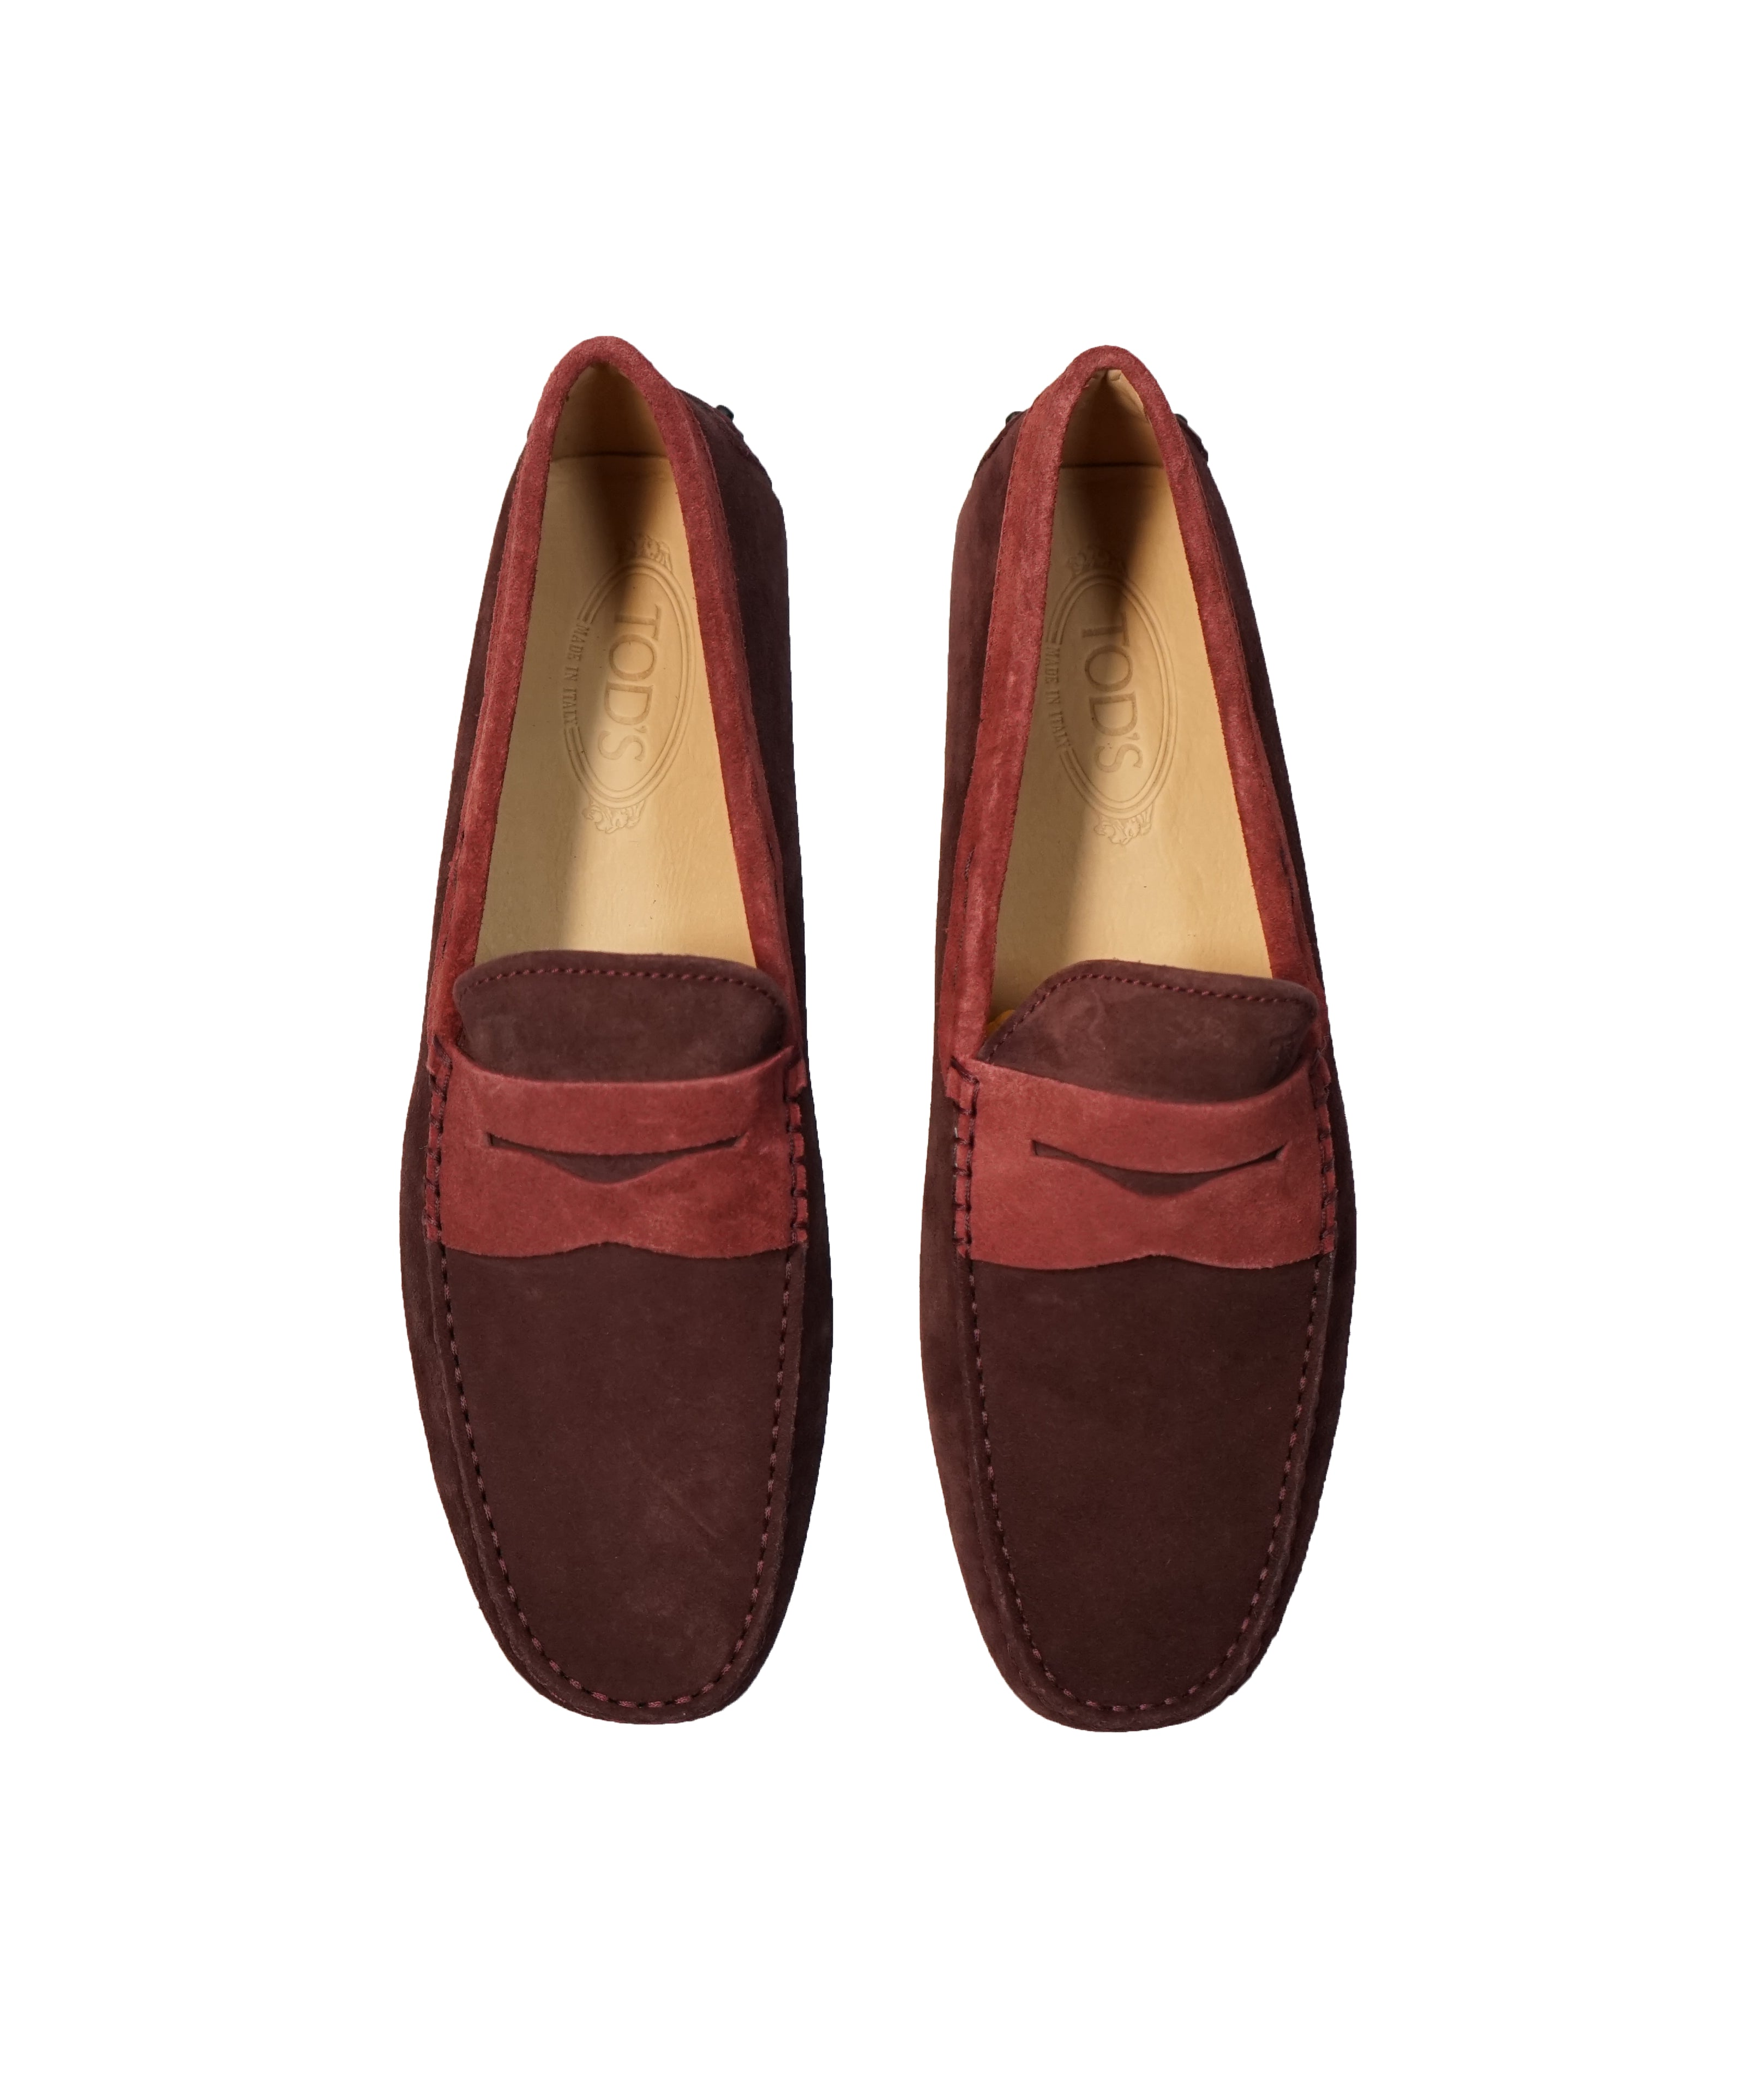 TOD'S - Gommini Laccetto Bi-Color Burgundy Suede Driving Loafers - 9